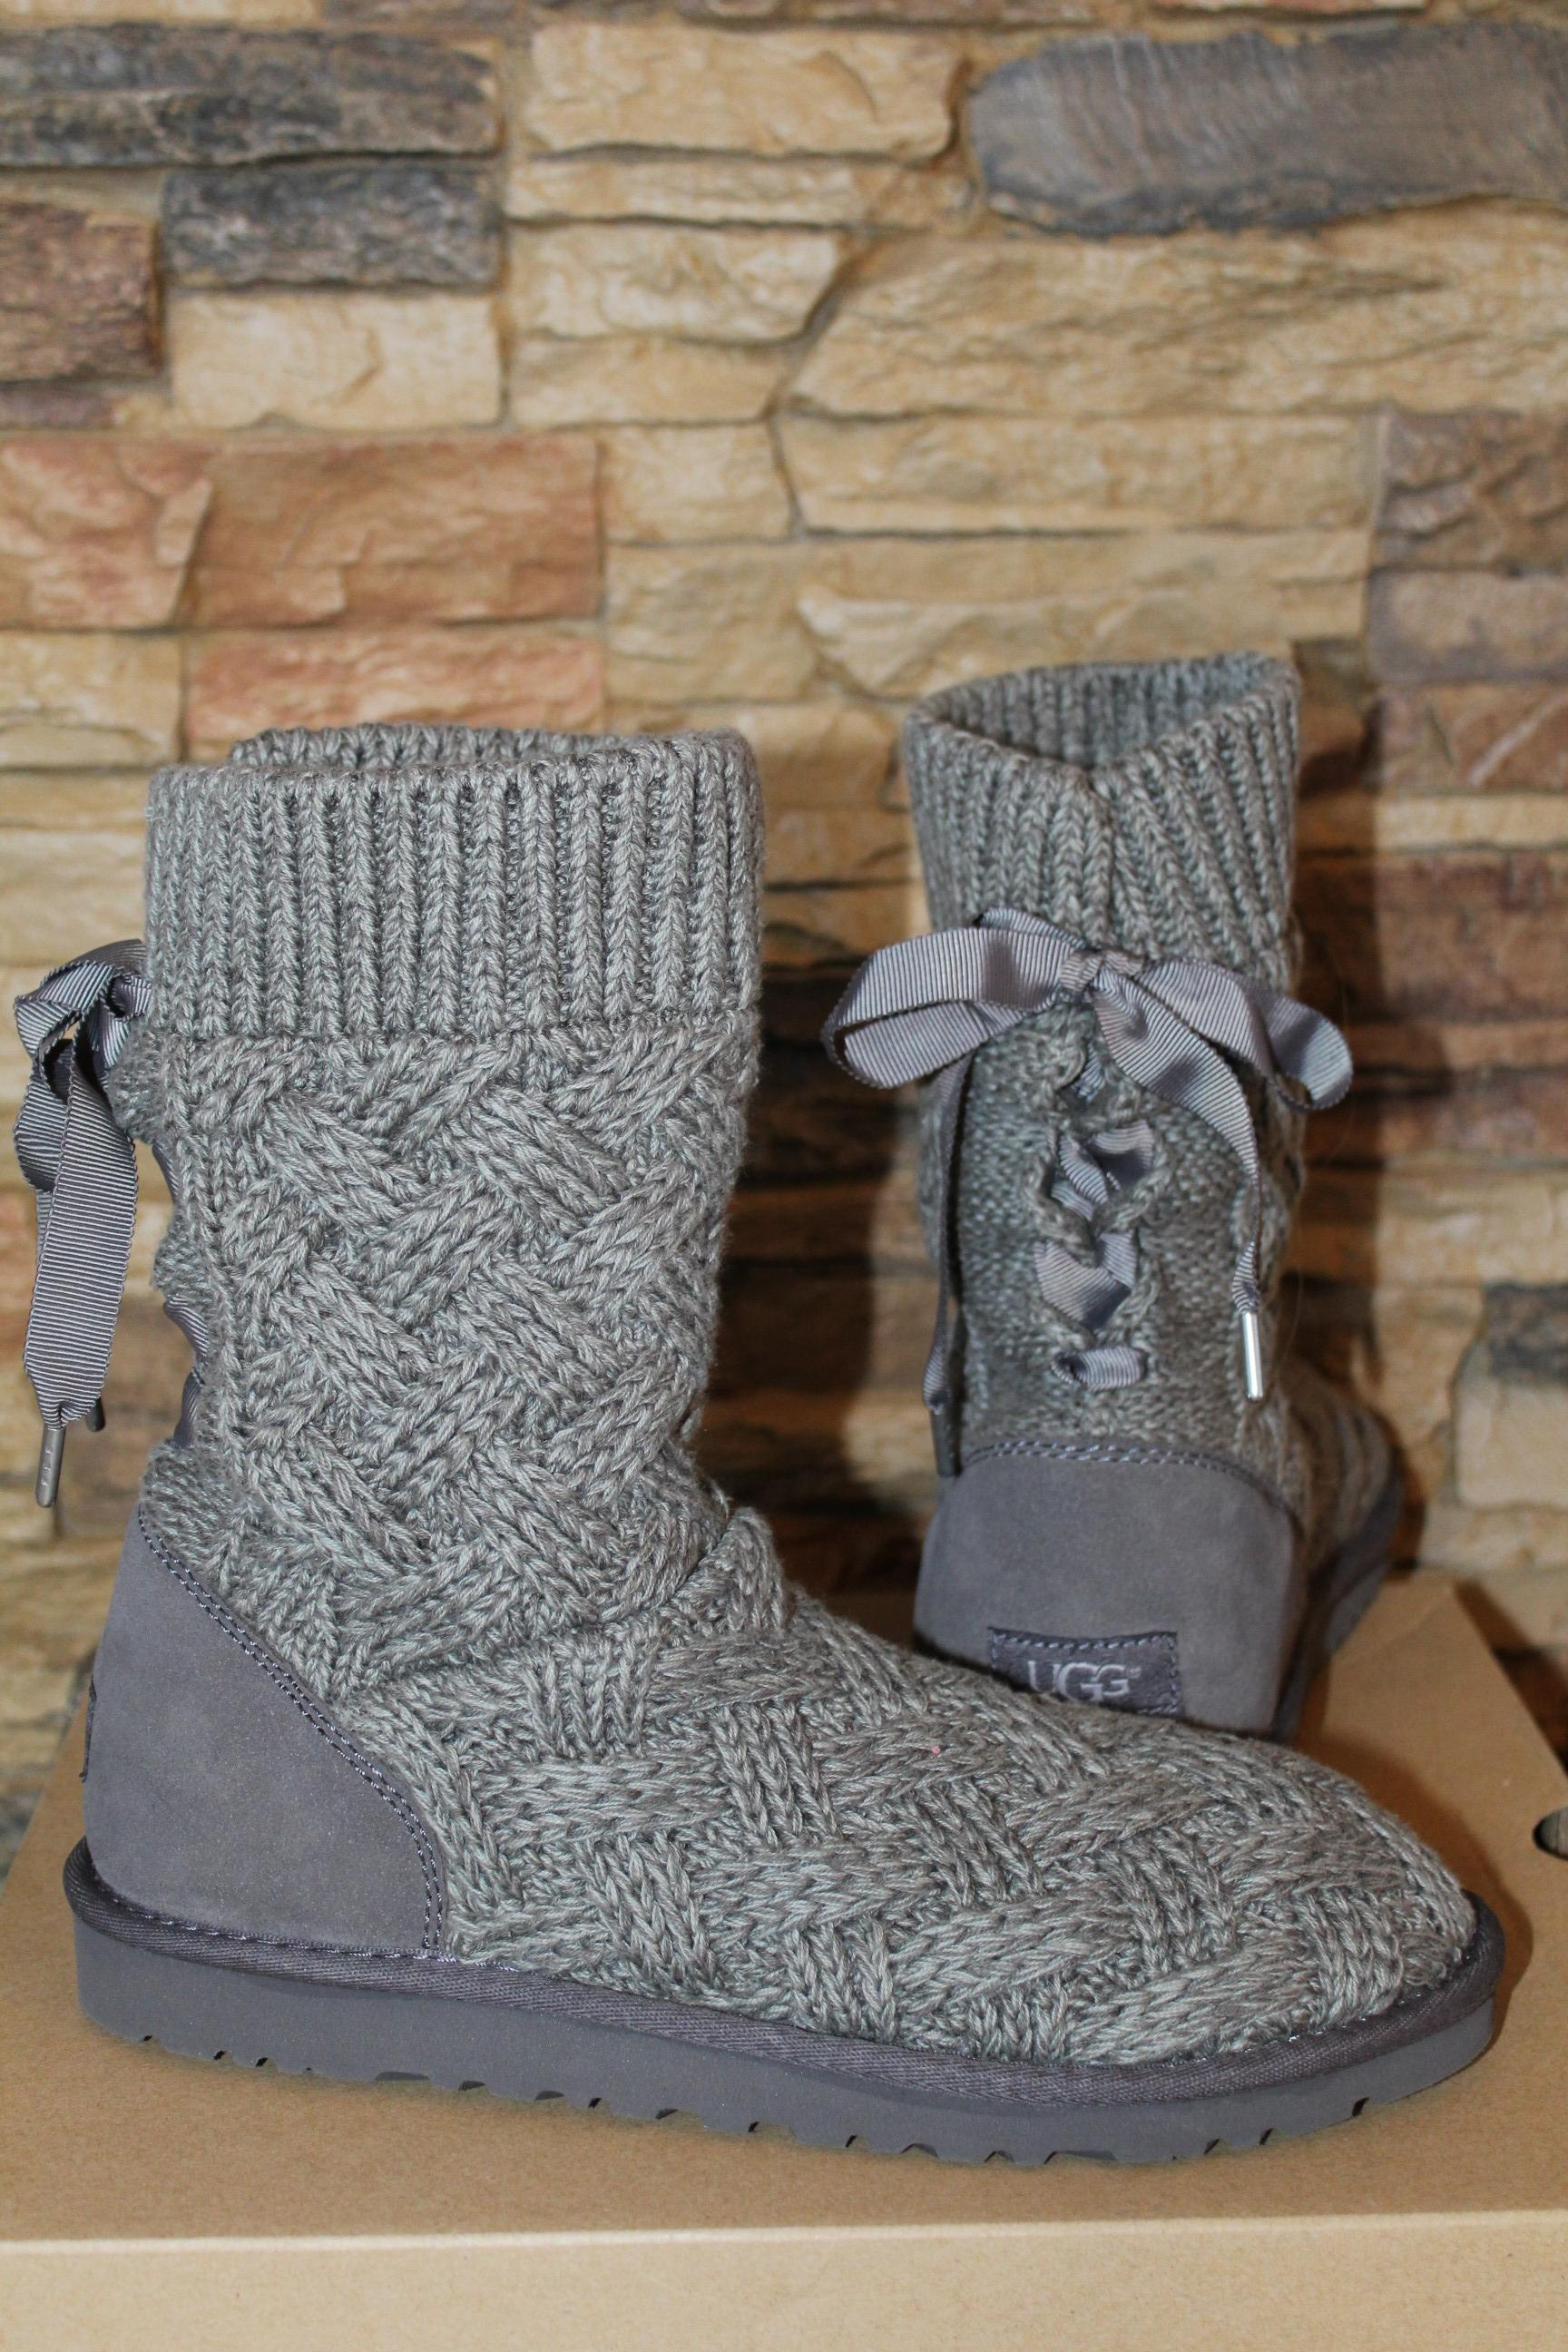 UGG Australia Gris Pull Isla 2337 Pull et Suede Bottes// Bottines Taille US 9 38e8bee - christopherbooneavalere.website